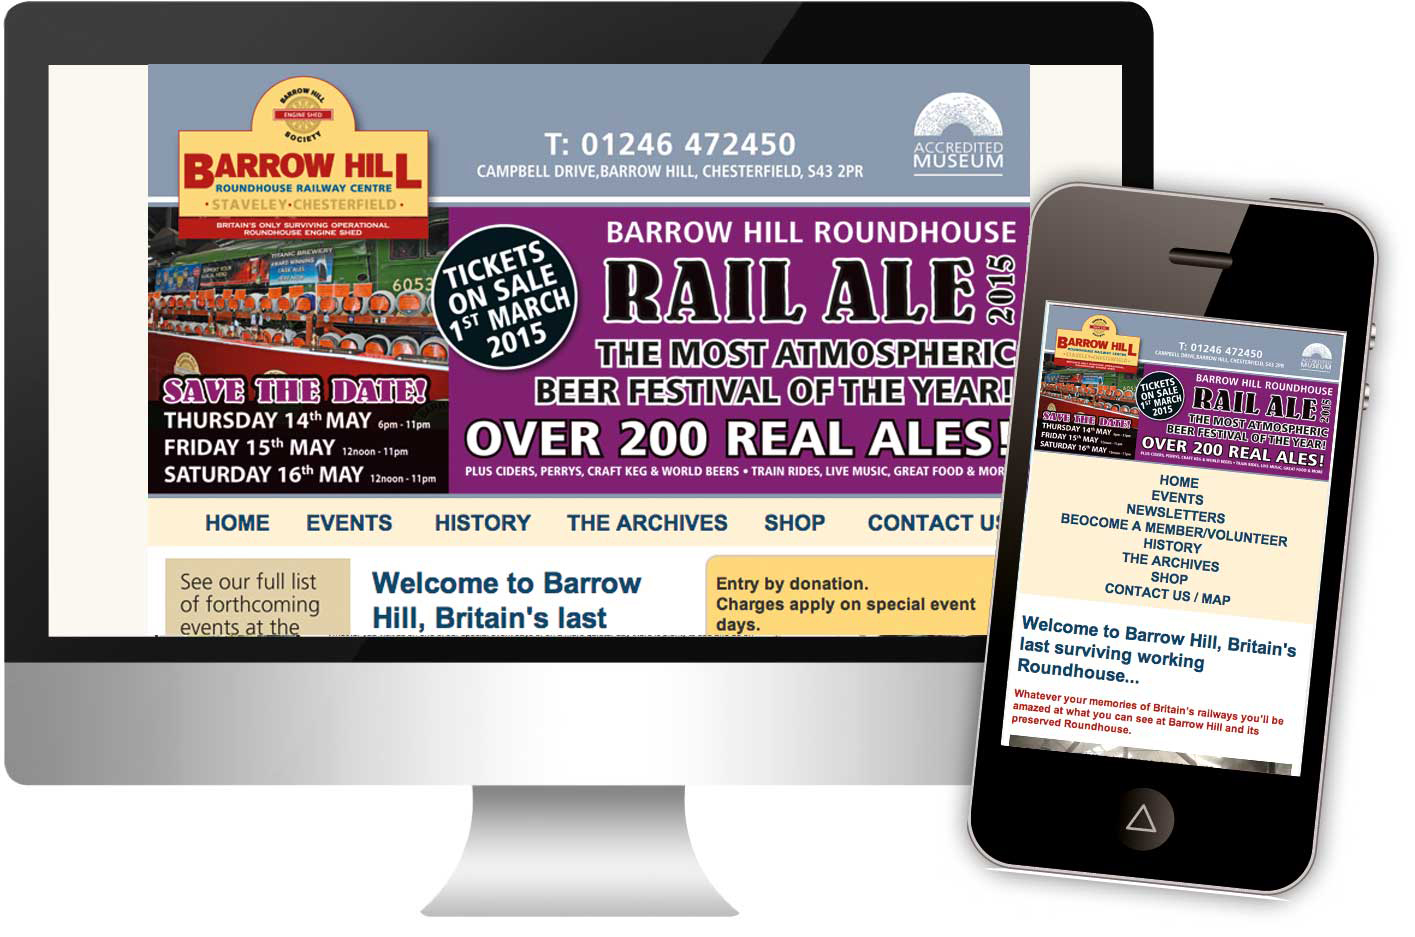 Barrow Hill Museum website, launched in January 2015, responsive web design.